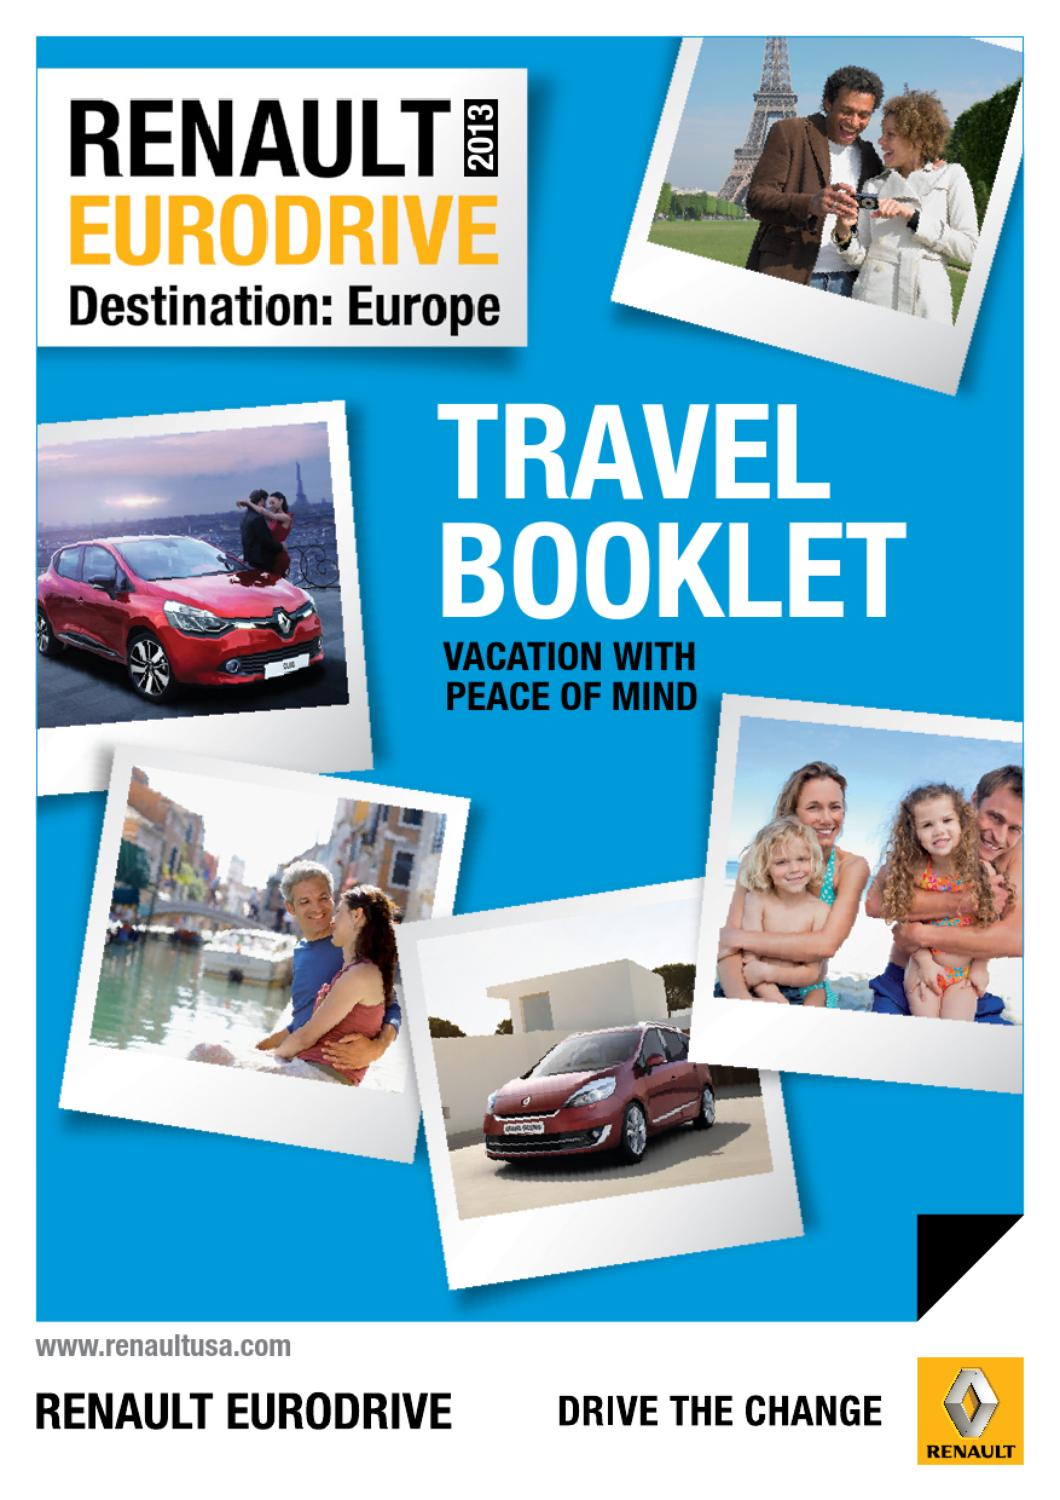 Short Term Car Lease >> Short Term Car Lease In Europe Travel Booklet 2013 By